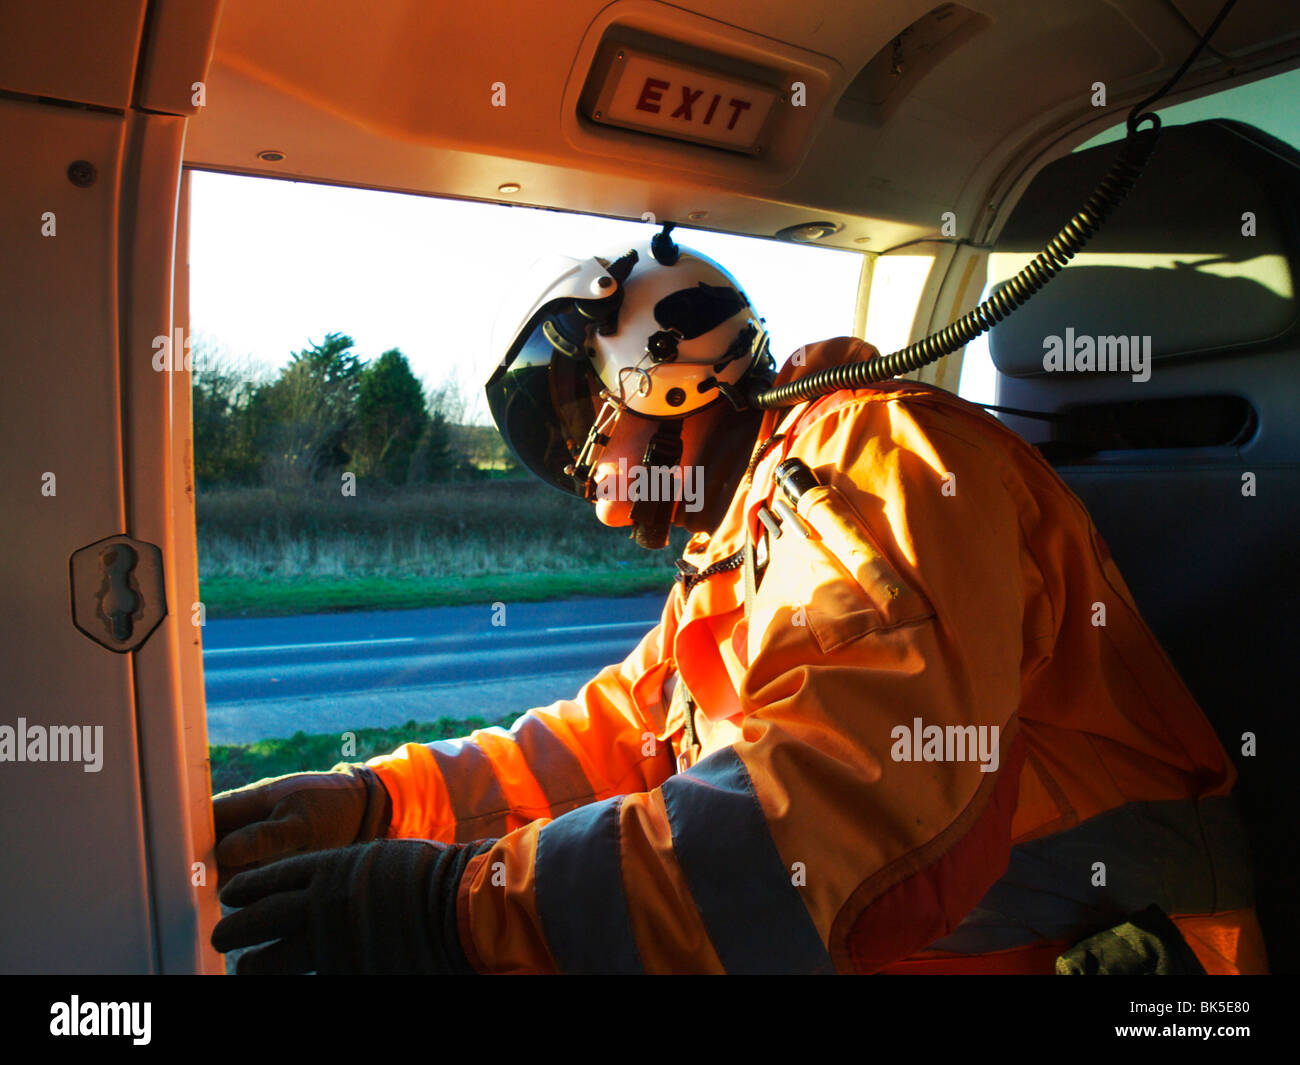 Air Ambulance Paramedic looking out of helicopter side doors during landing on the scene of a car accident - Stock Image